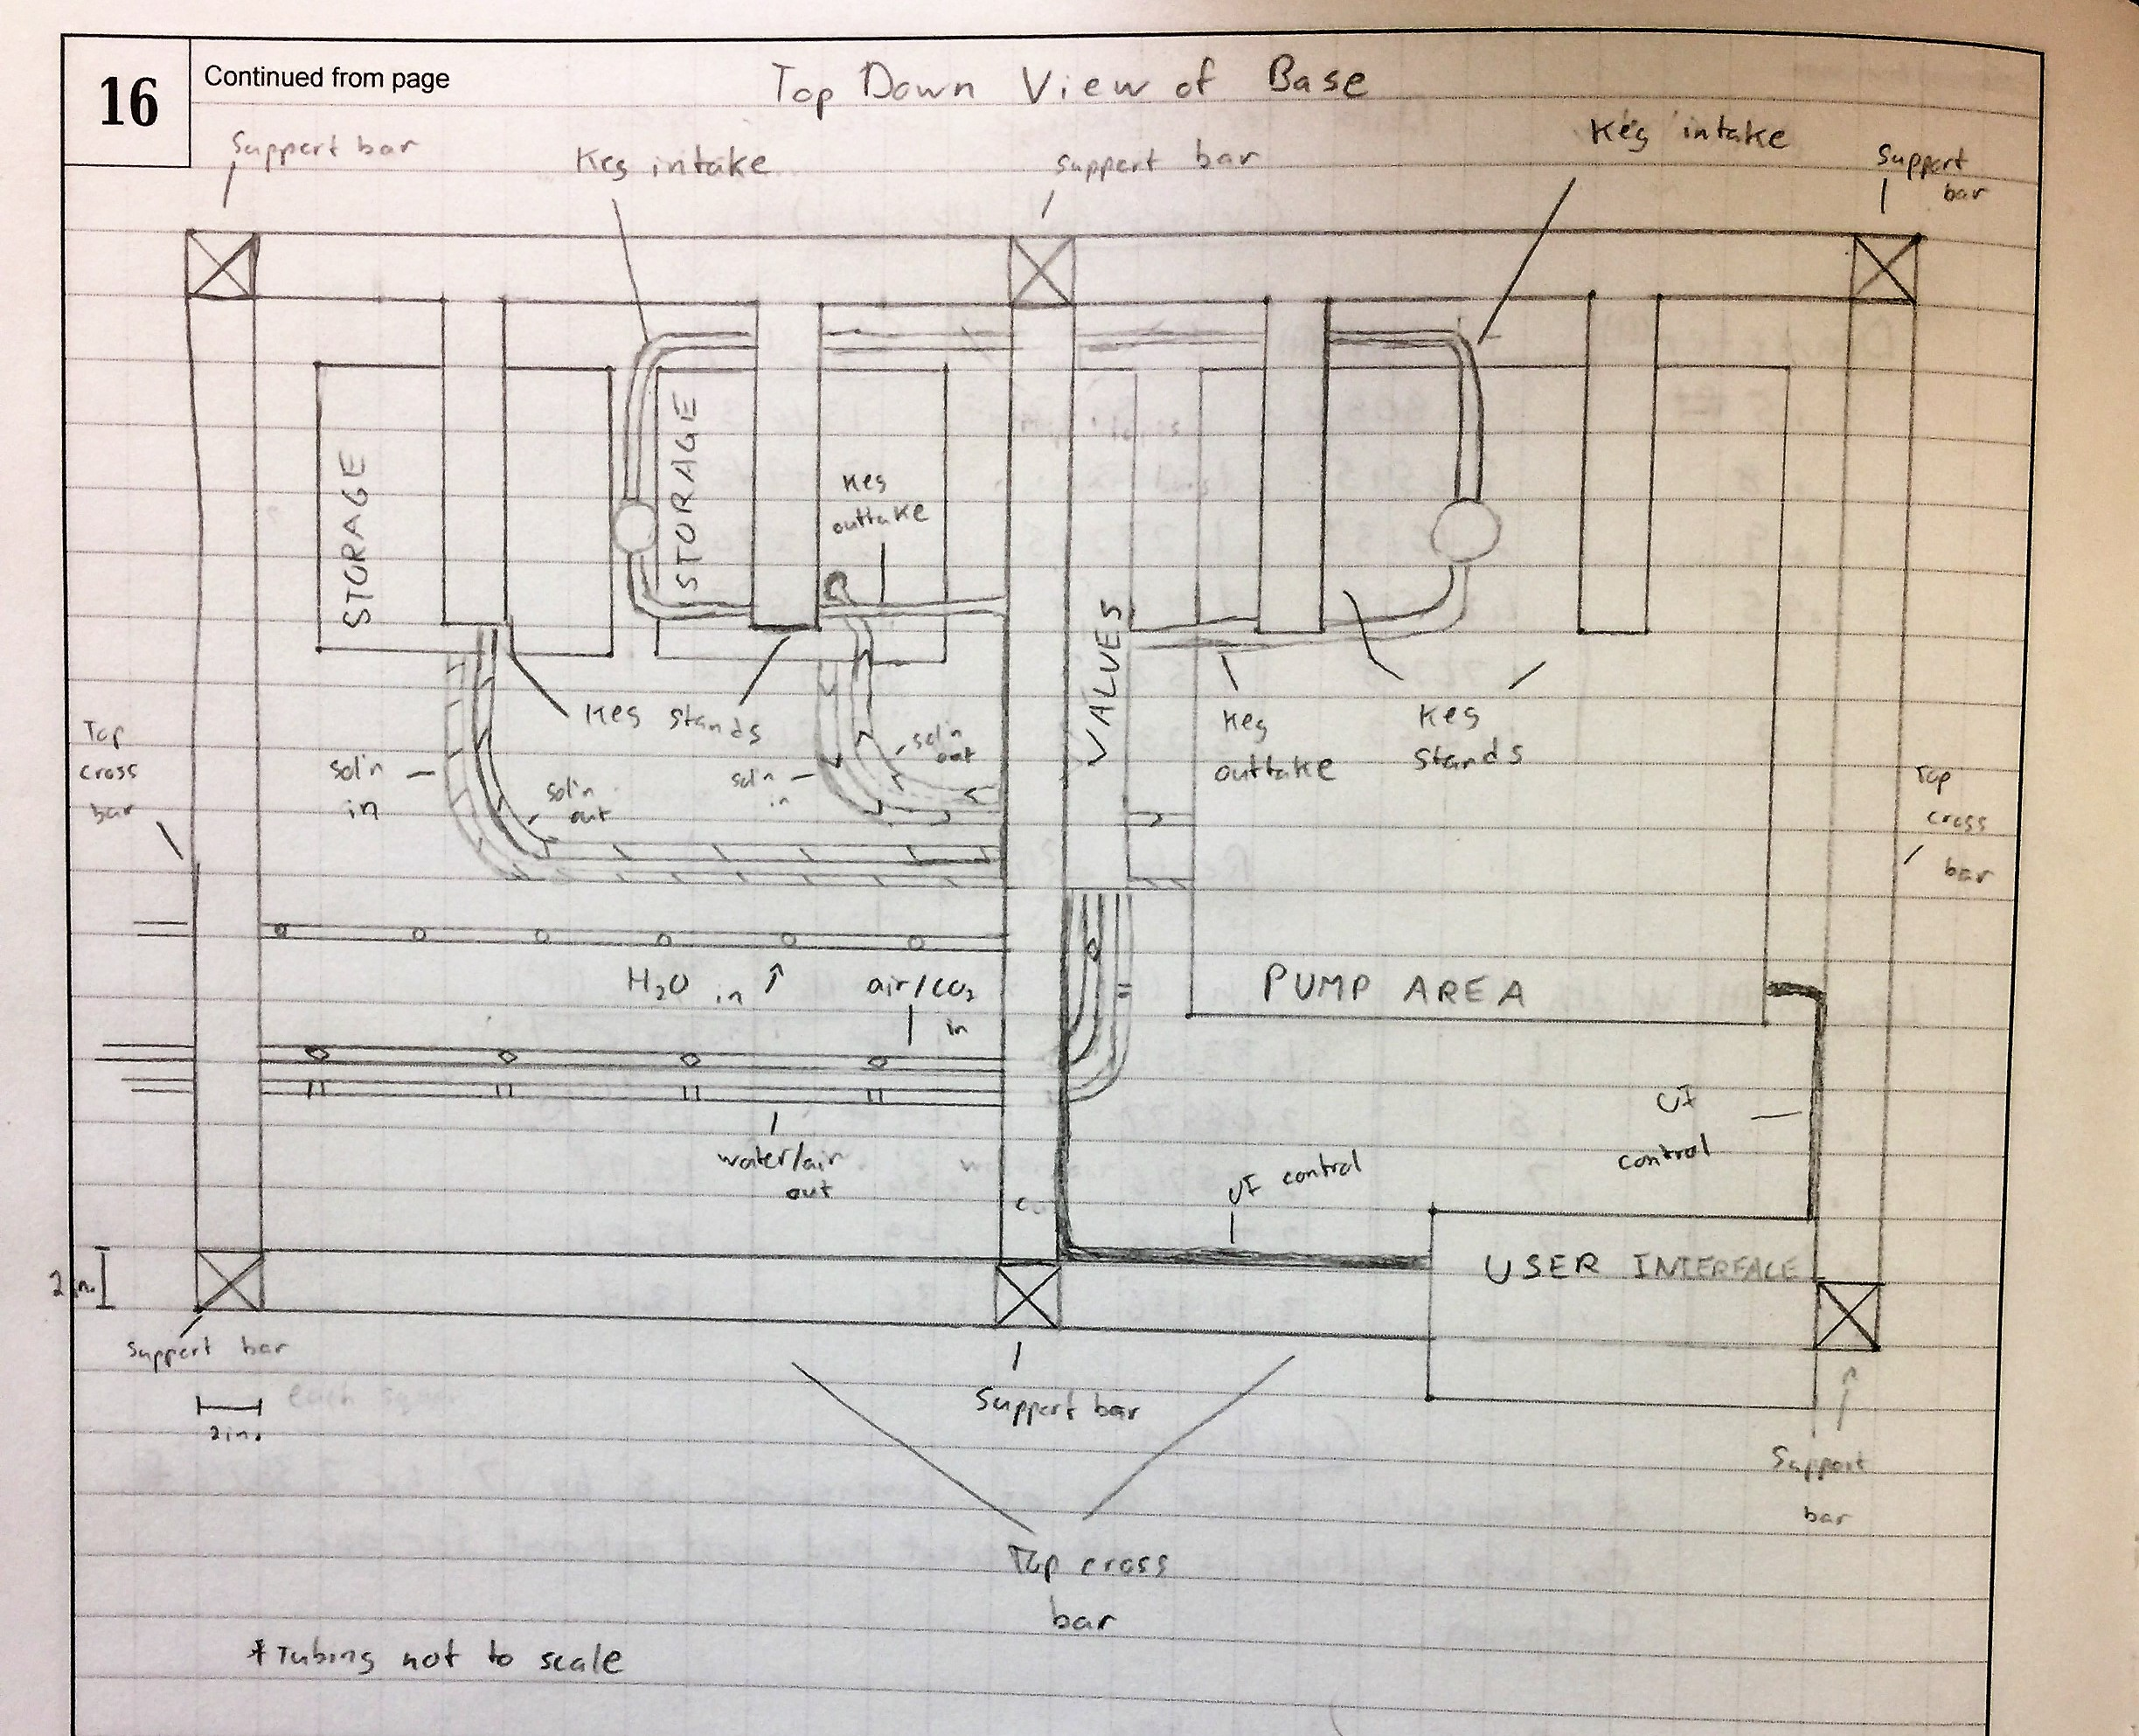 Ry Block Diagram Continued Wiring Library 6 Way Trailer Calking For Extra Protection Design 1 Top View